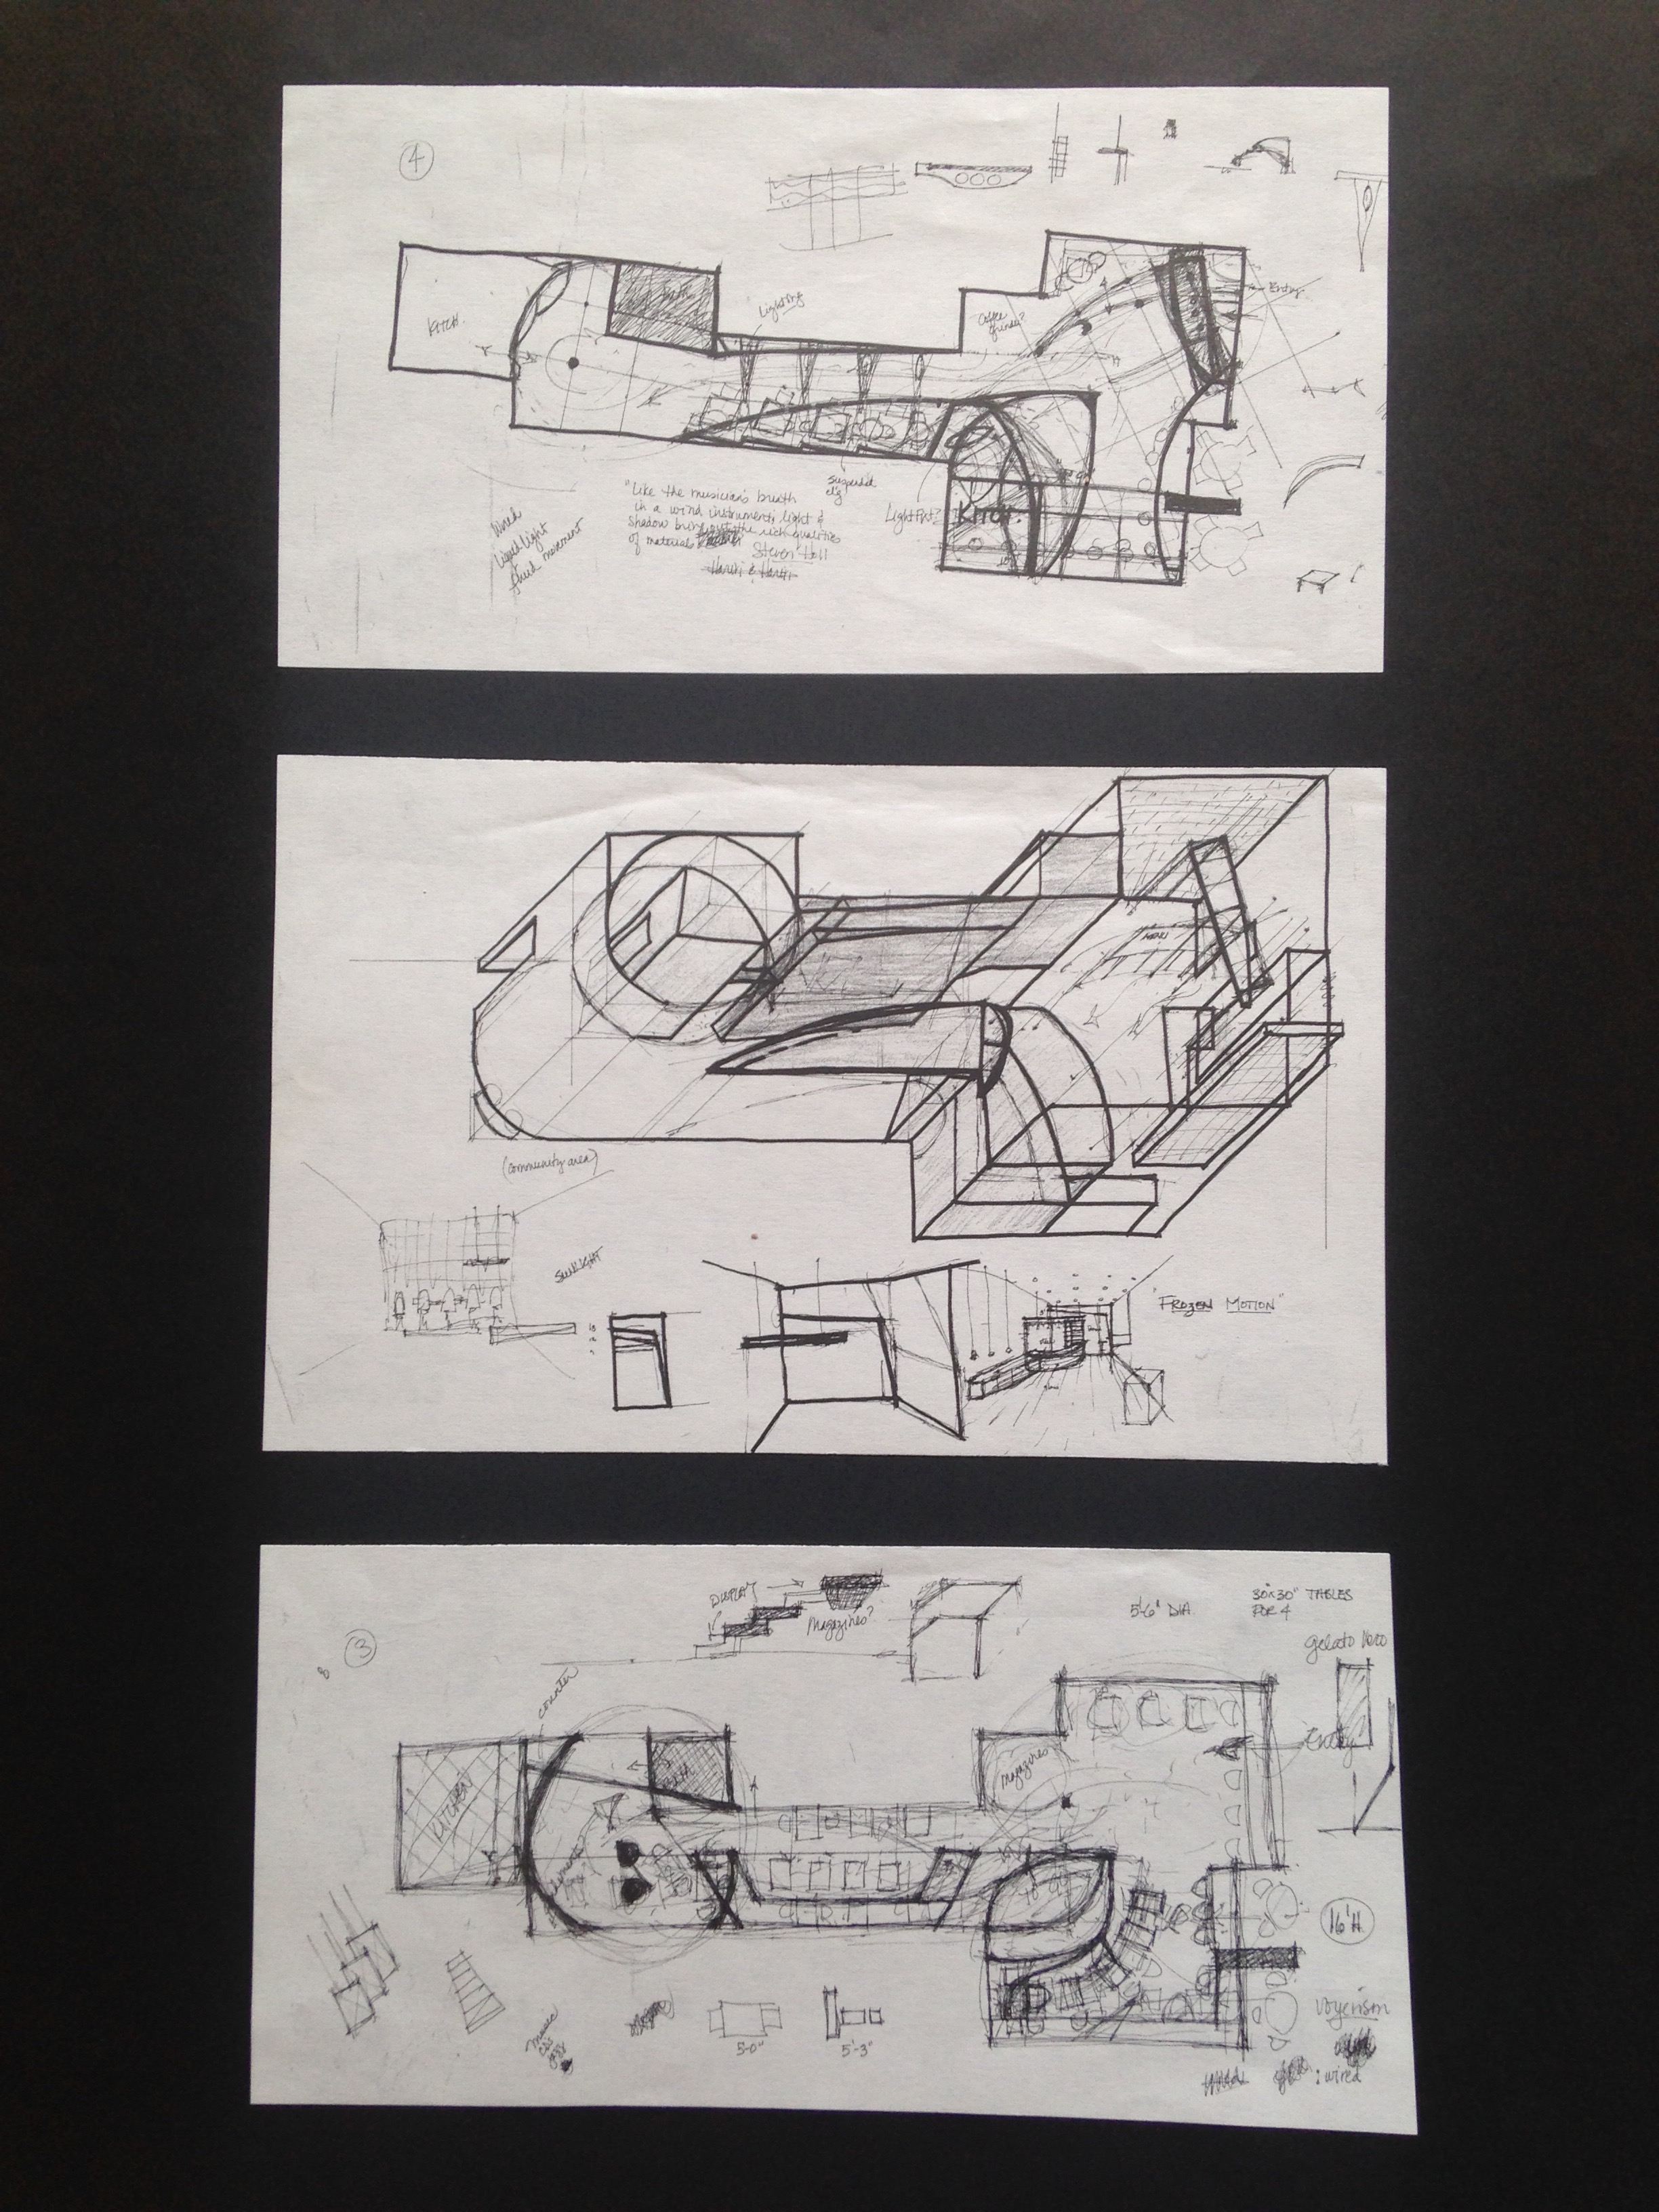 Concept sketches for a cafe, ink and pencil on sketch paper